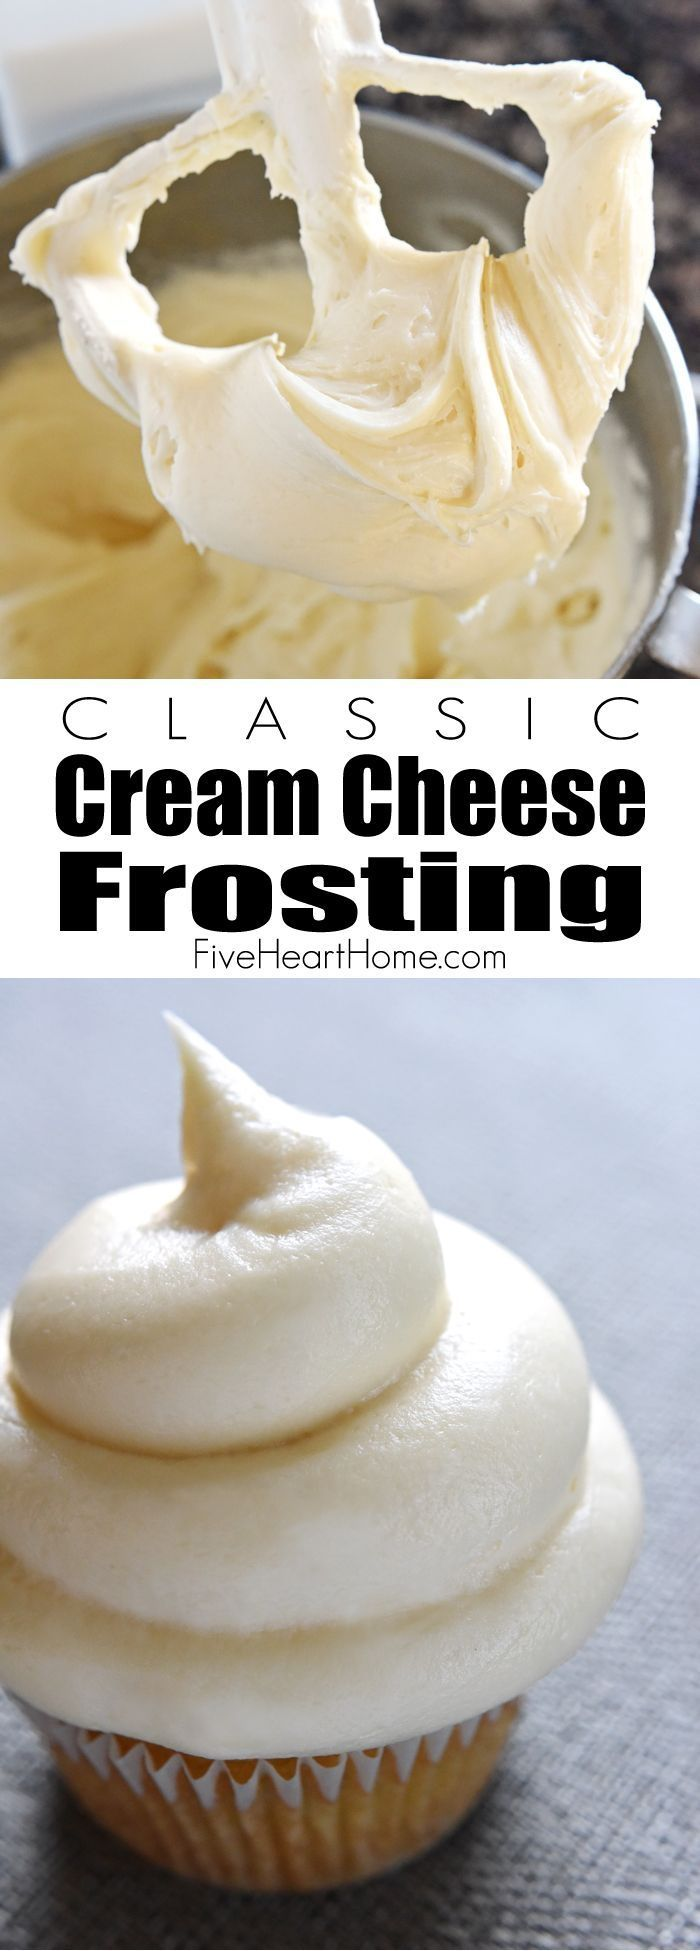 Classic Cream Cheese Frosting | #cheese #Classic #Cream #Frosting